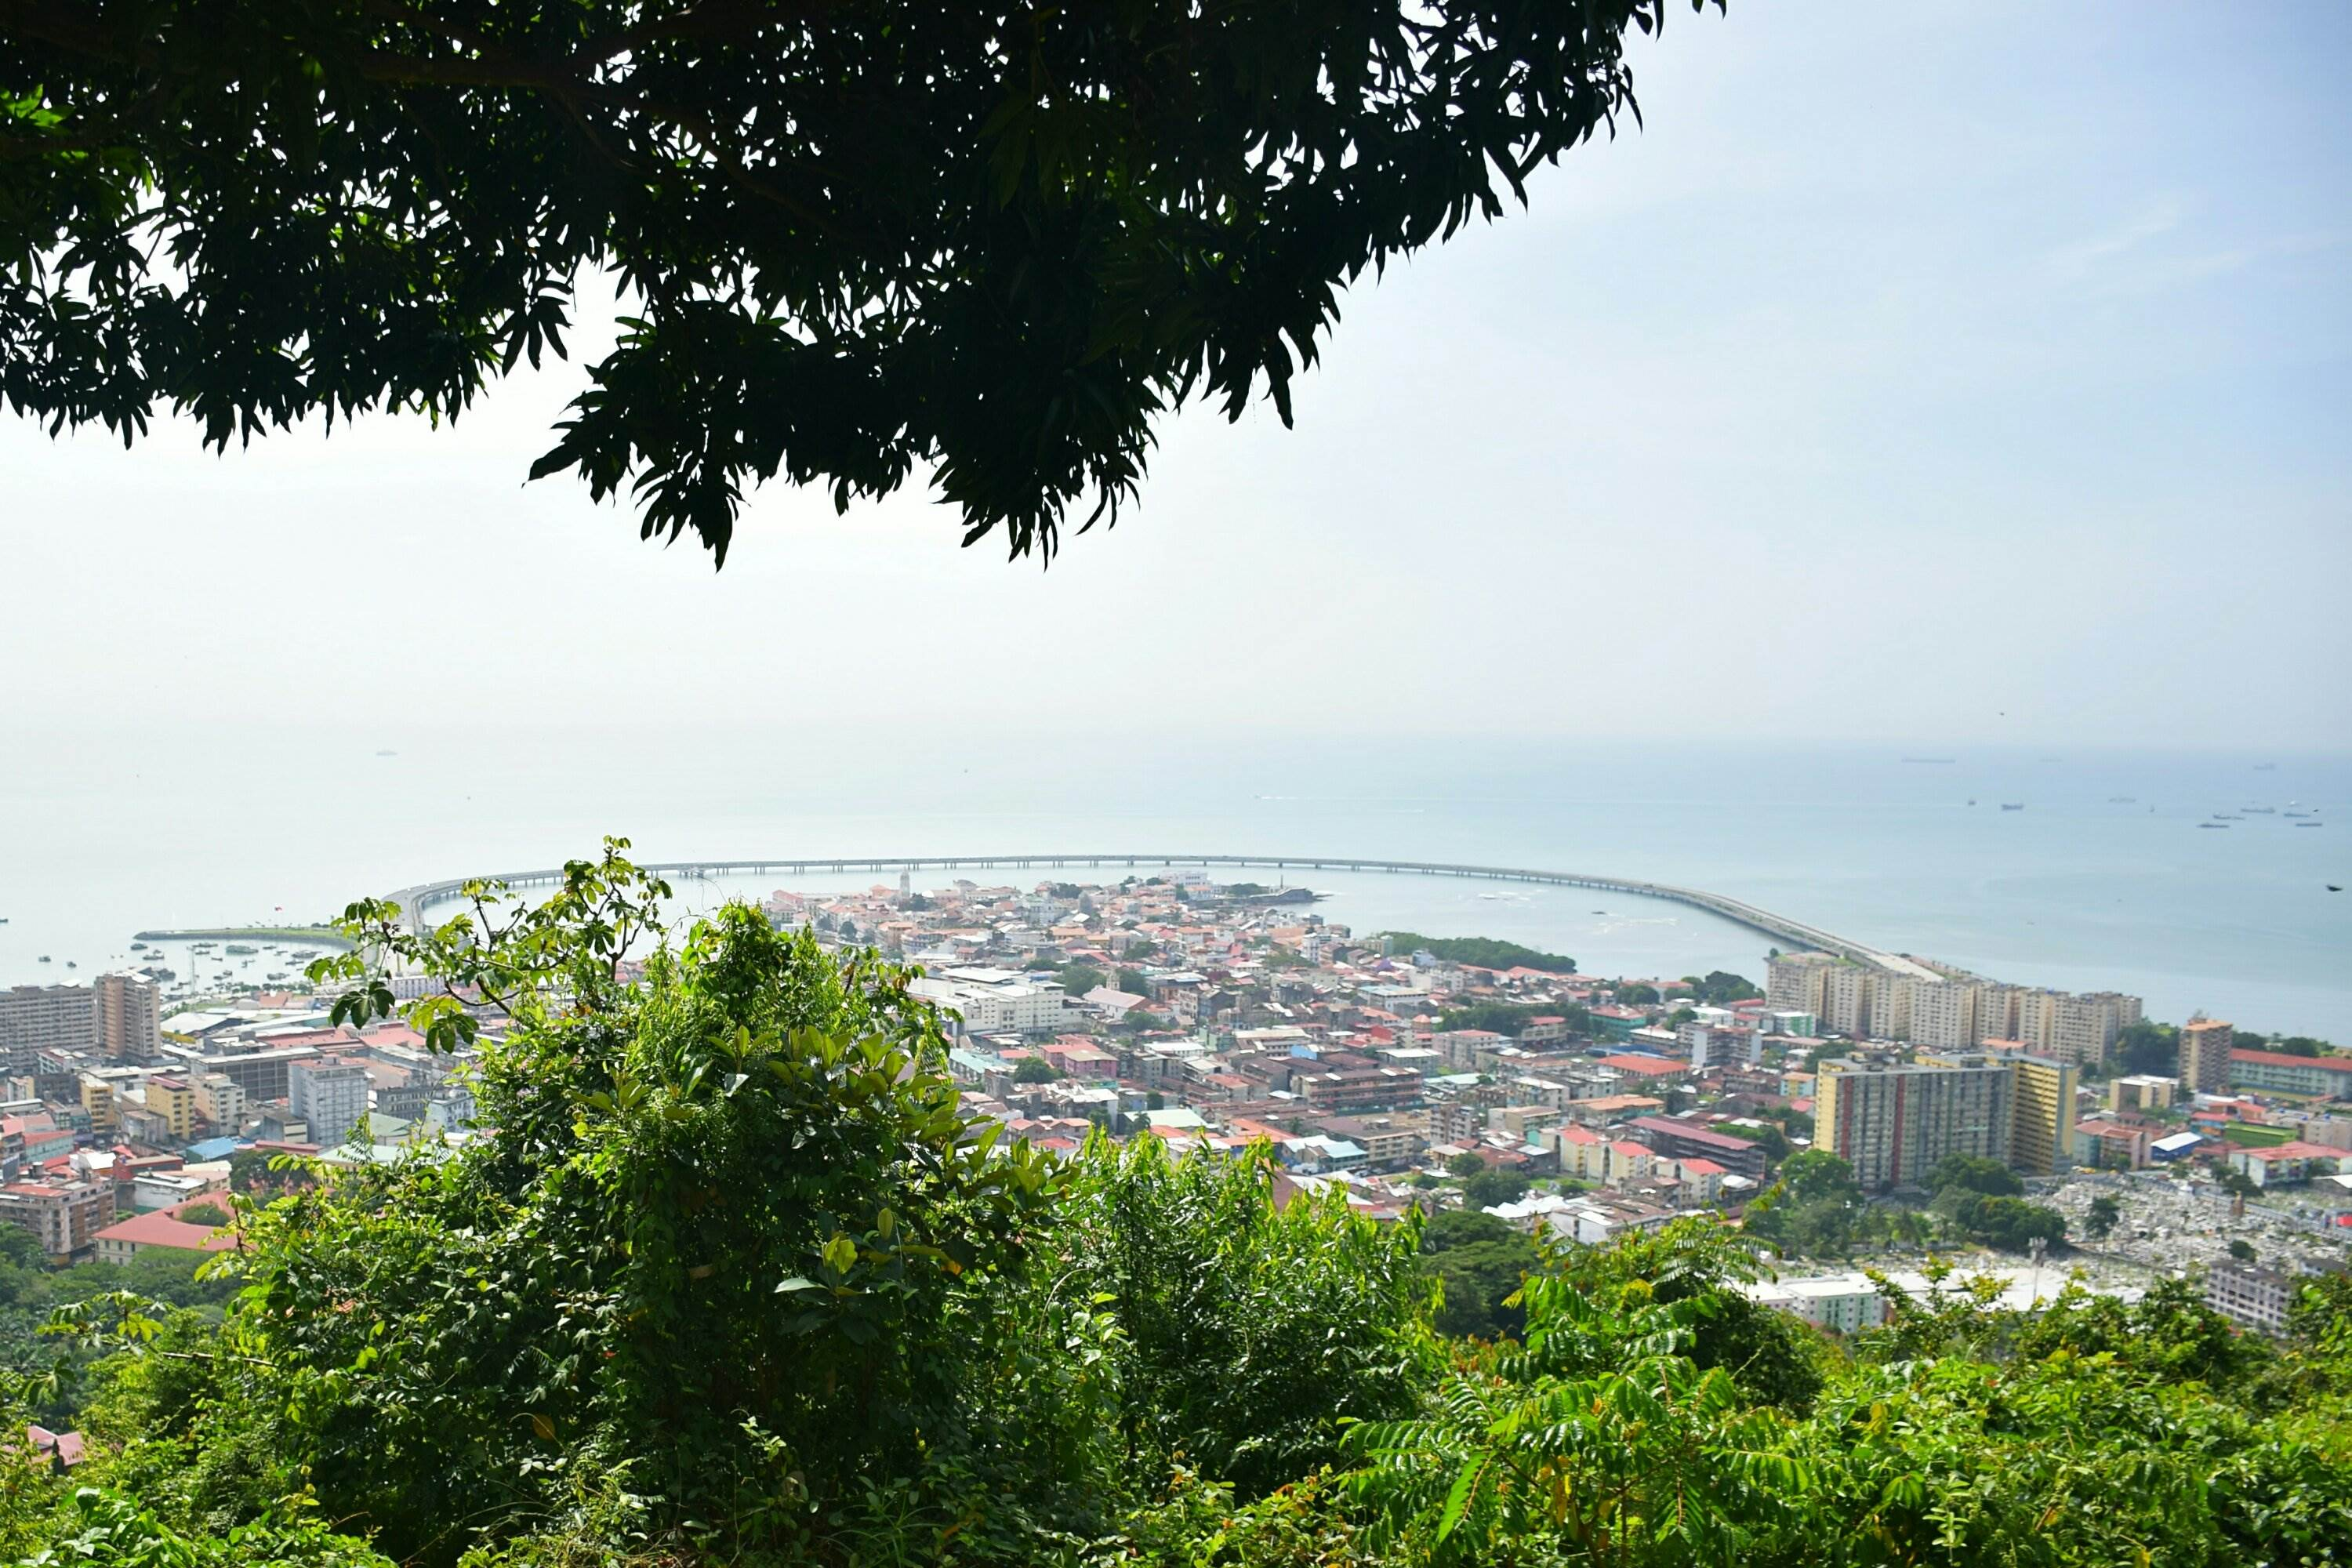 visit Panama City and hike ancon hill